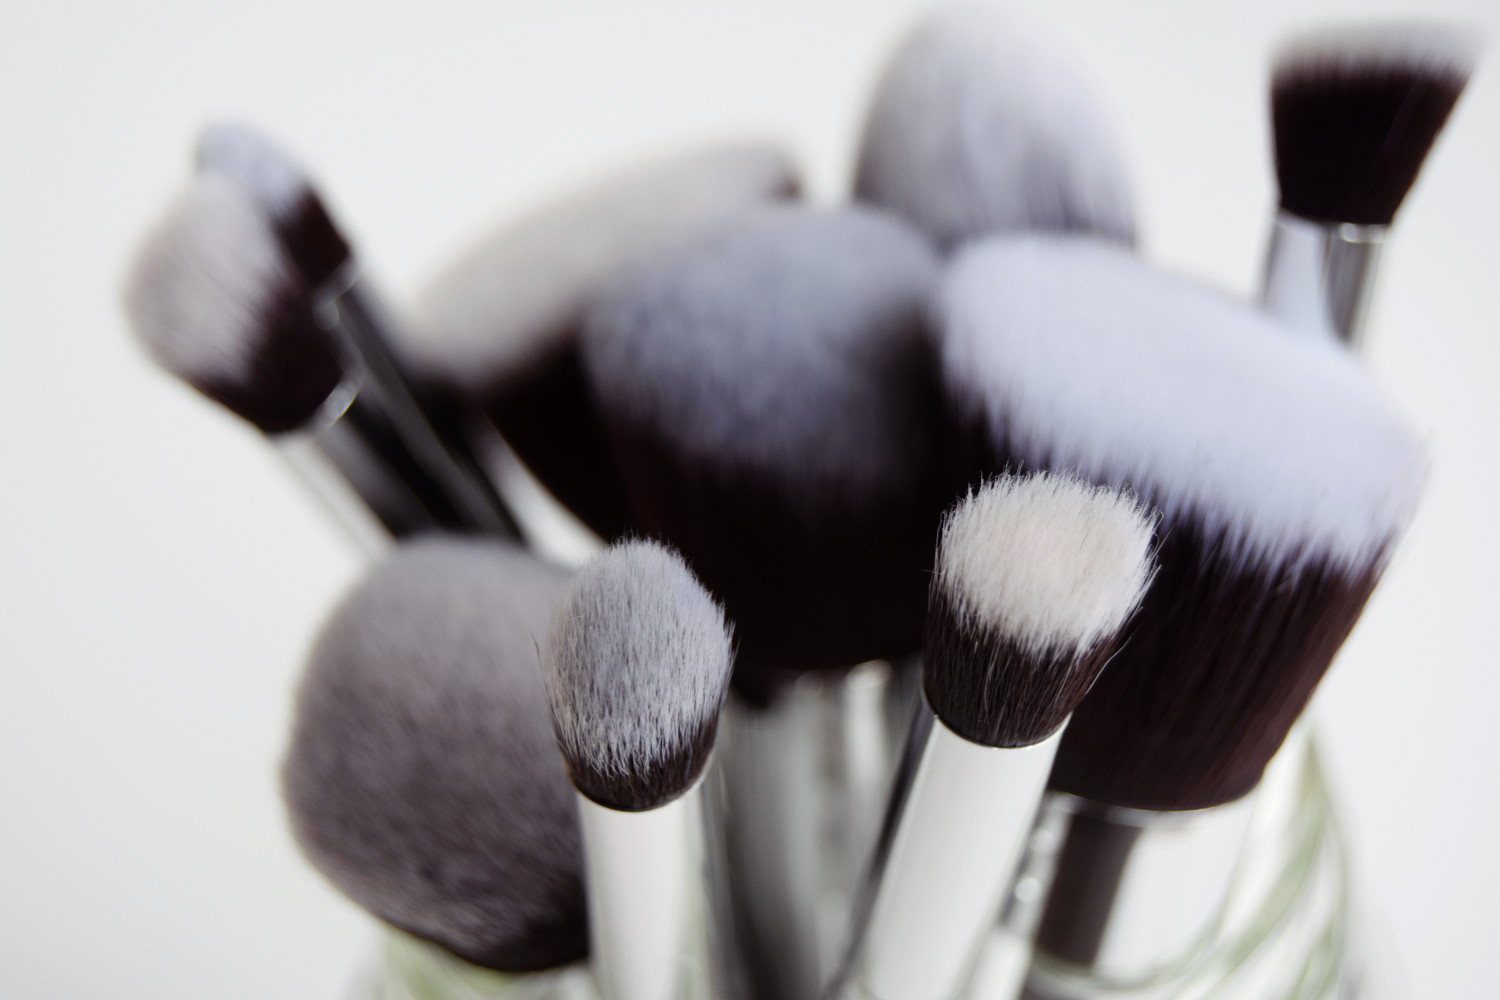 jessup_brushes_review_new_in_zalabell_blog_makeup_beauty_4